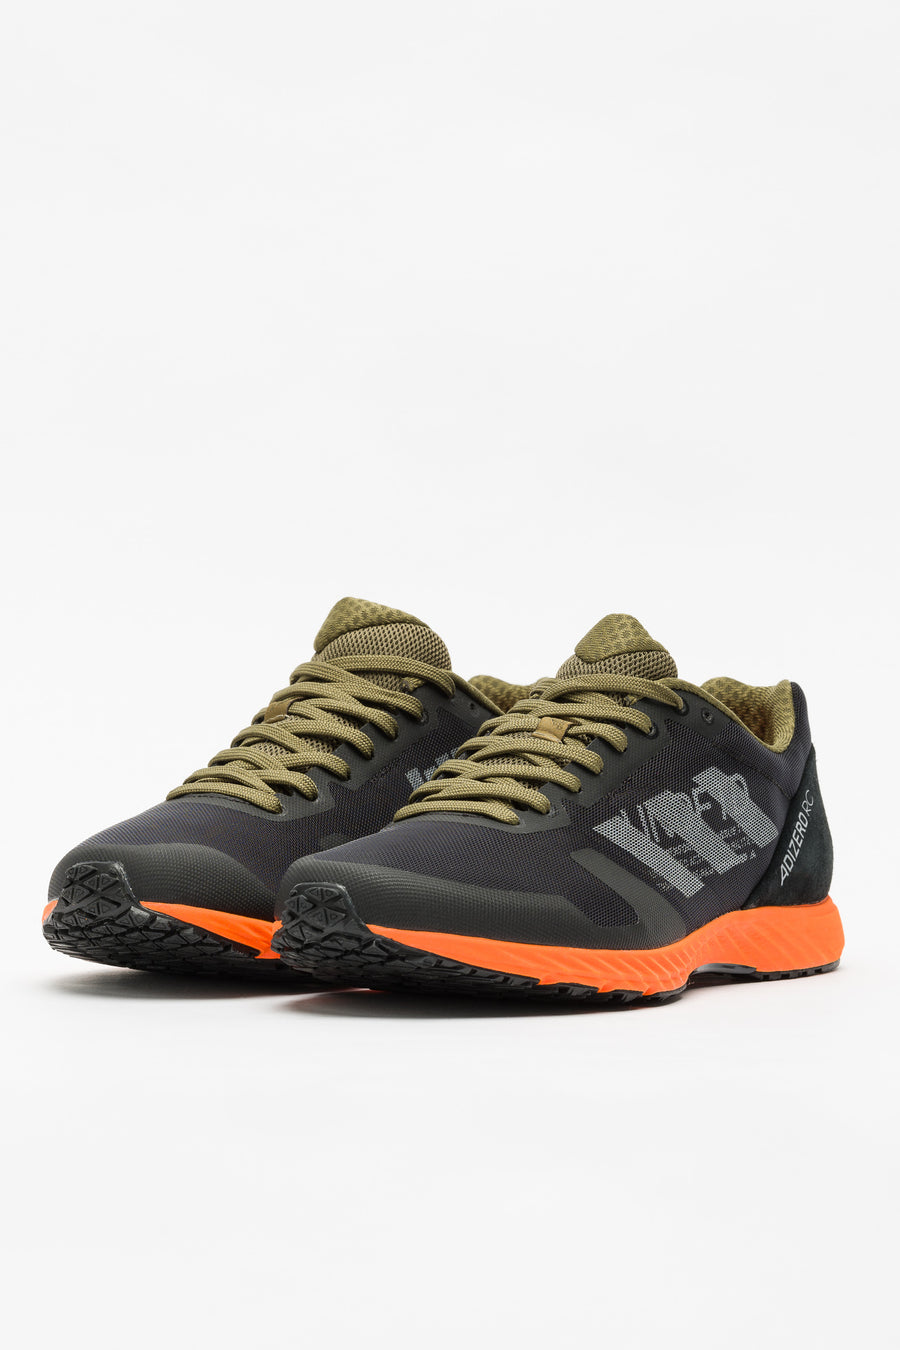 adidas Undefeated Adizero RC Black/Grey/Orange - Notre